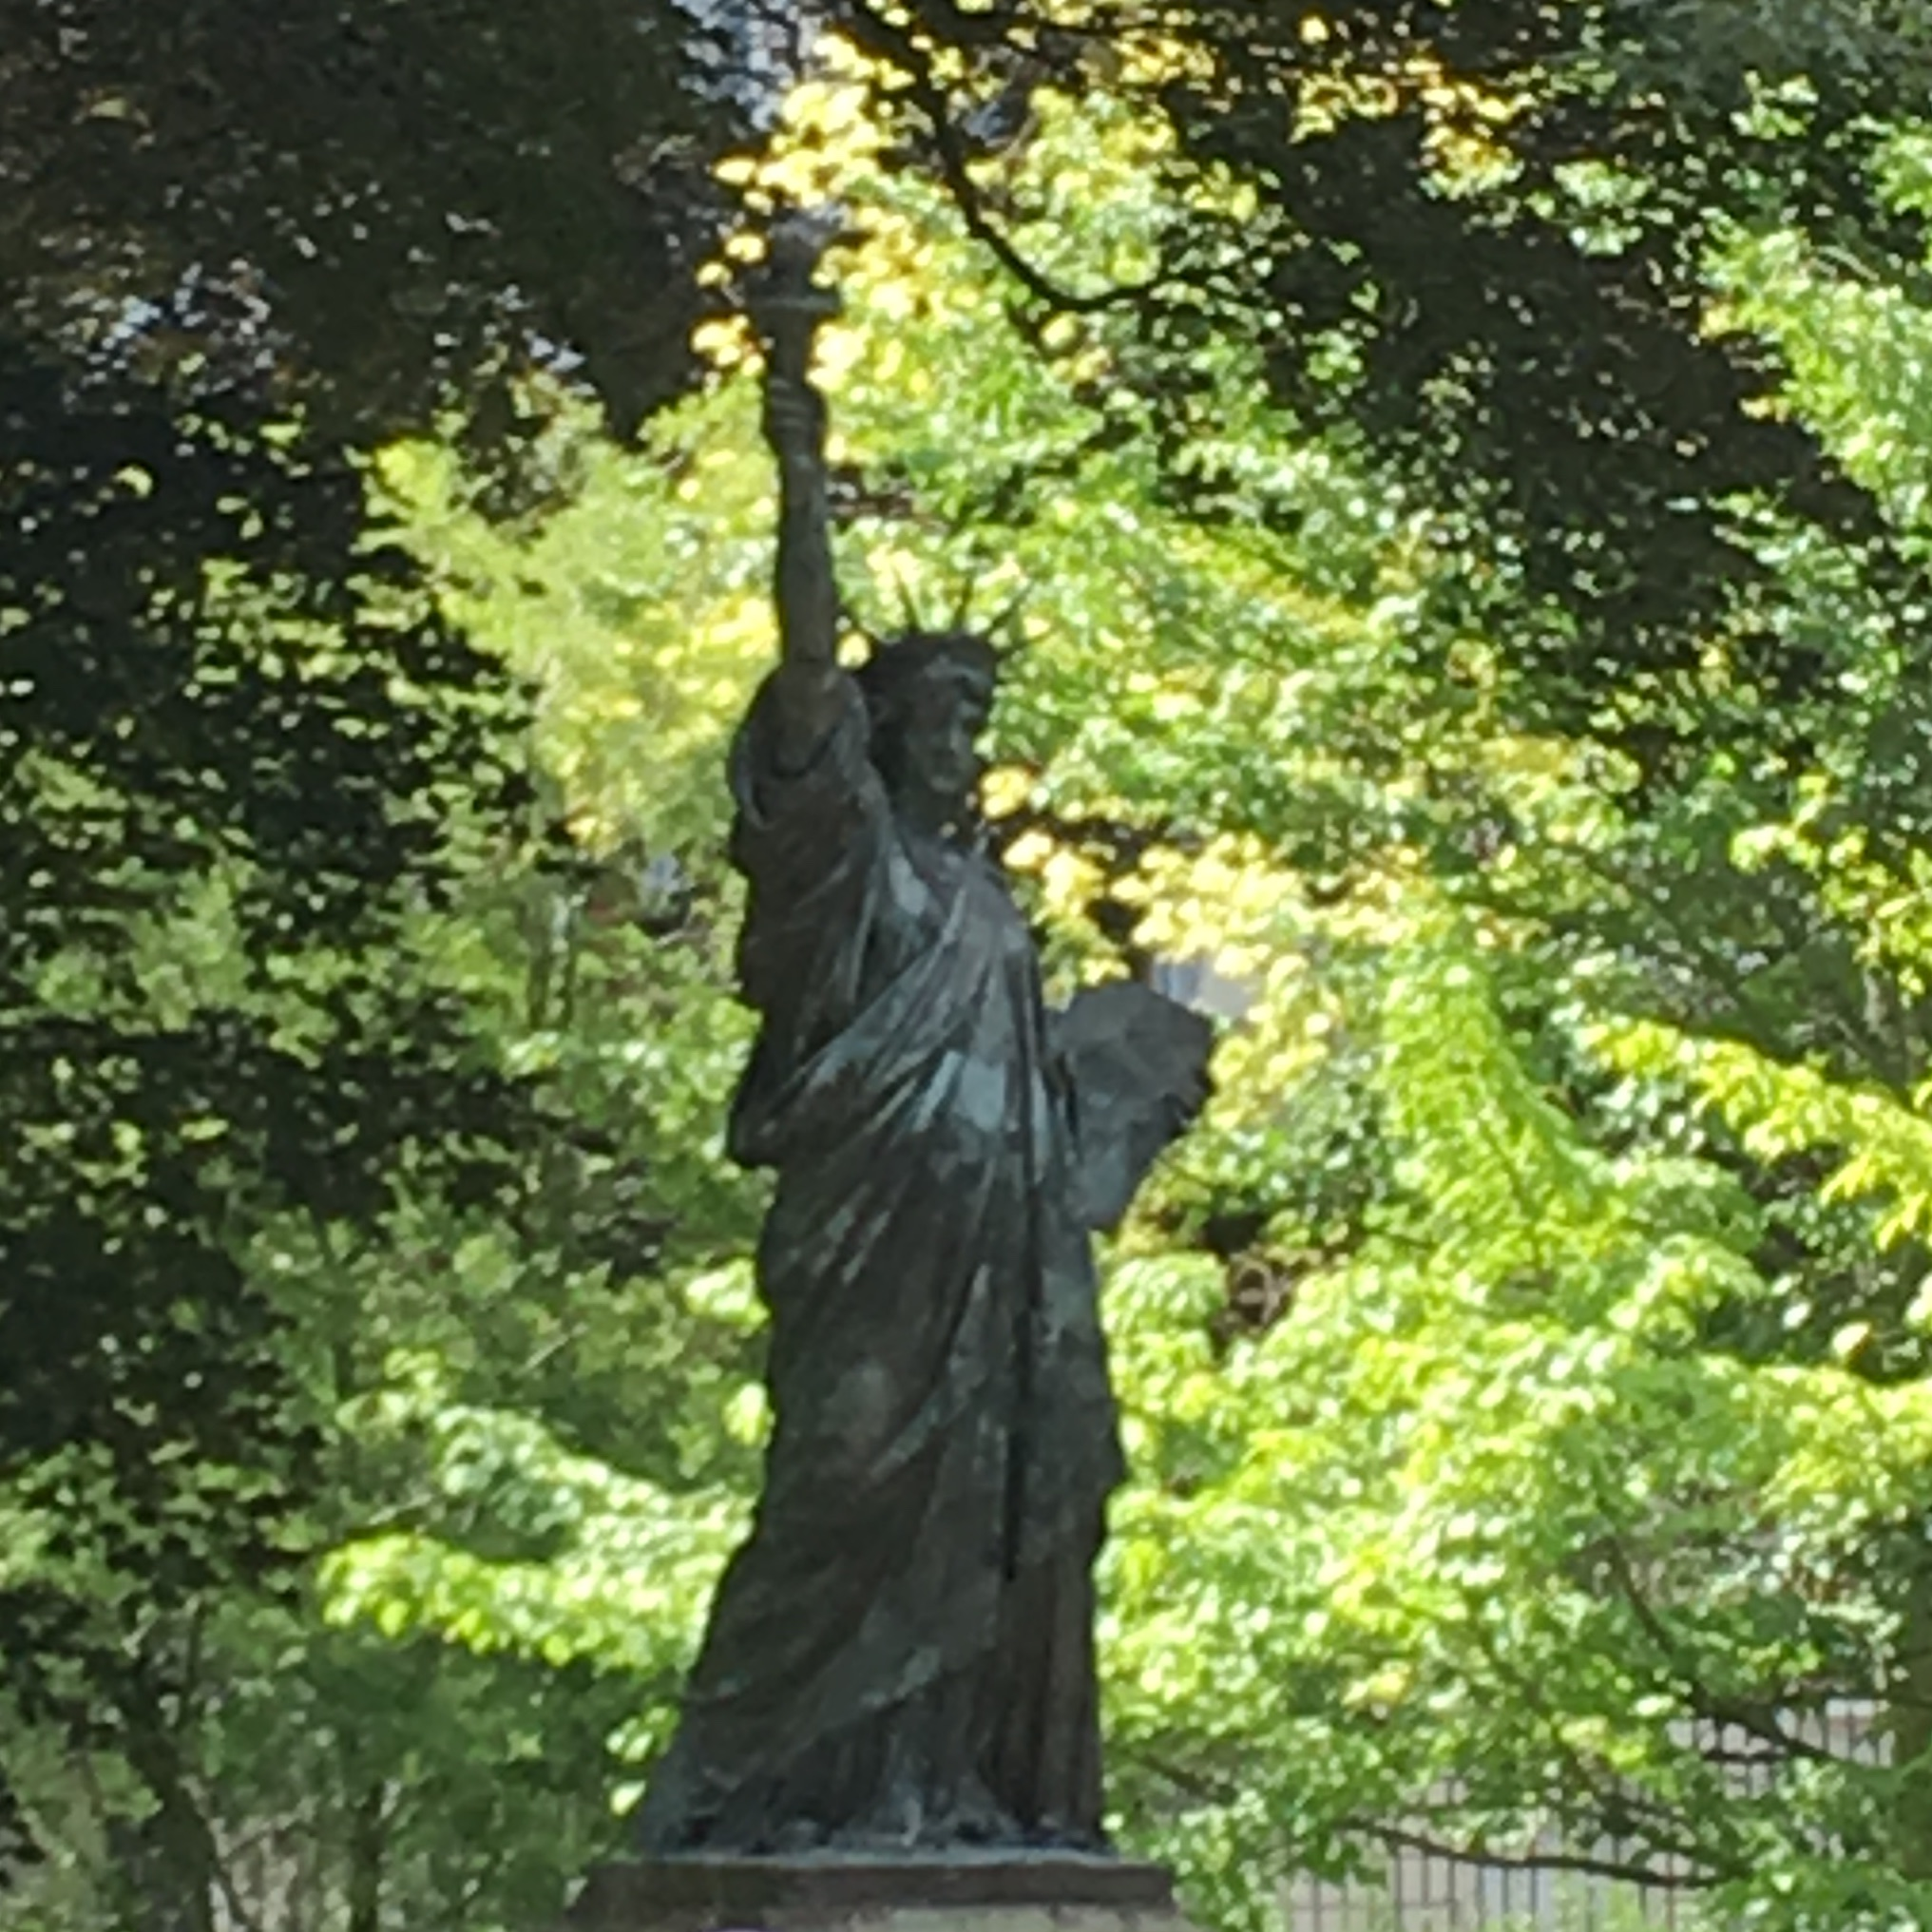 photo of a small Statue of Liberty